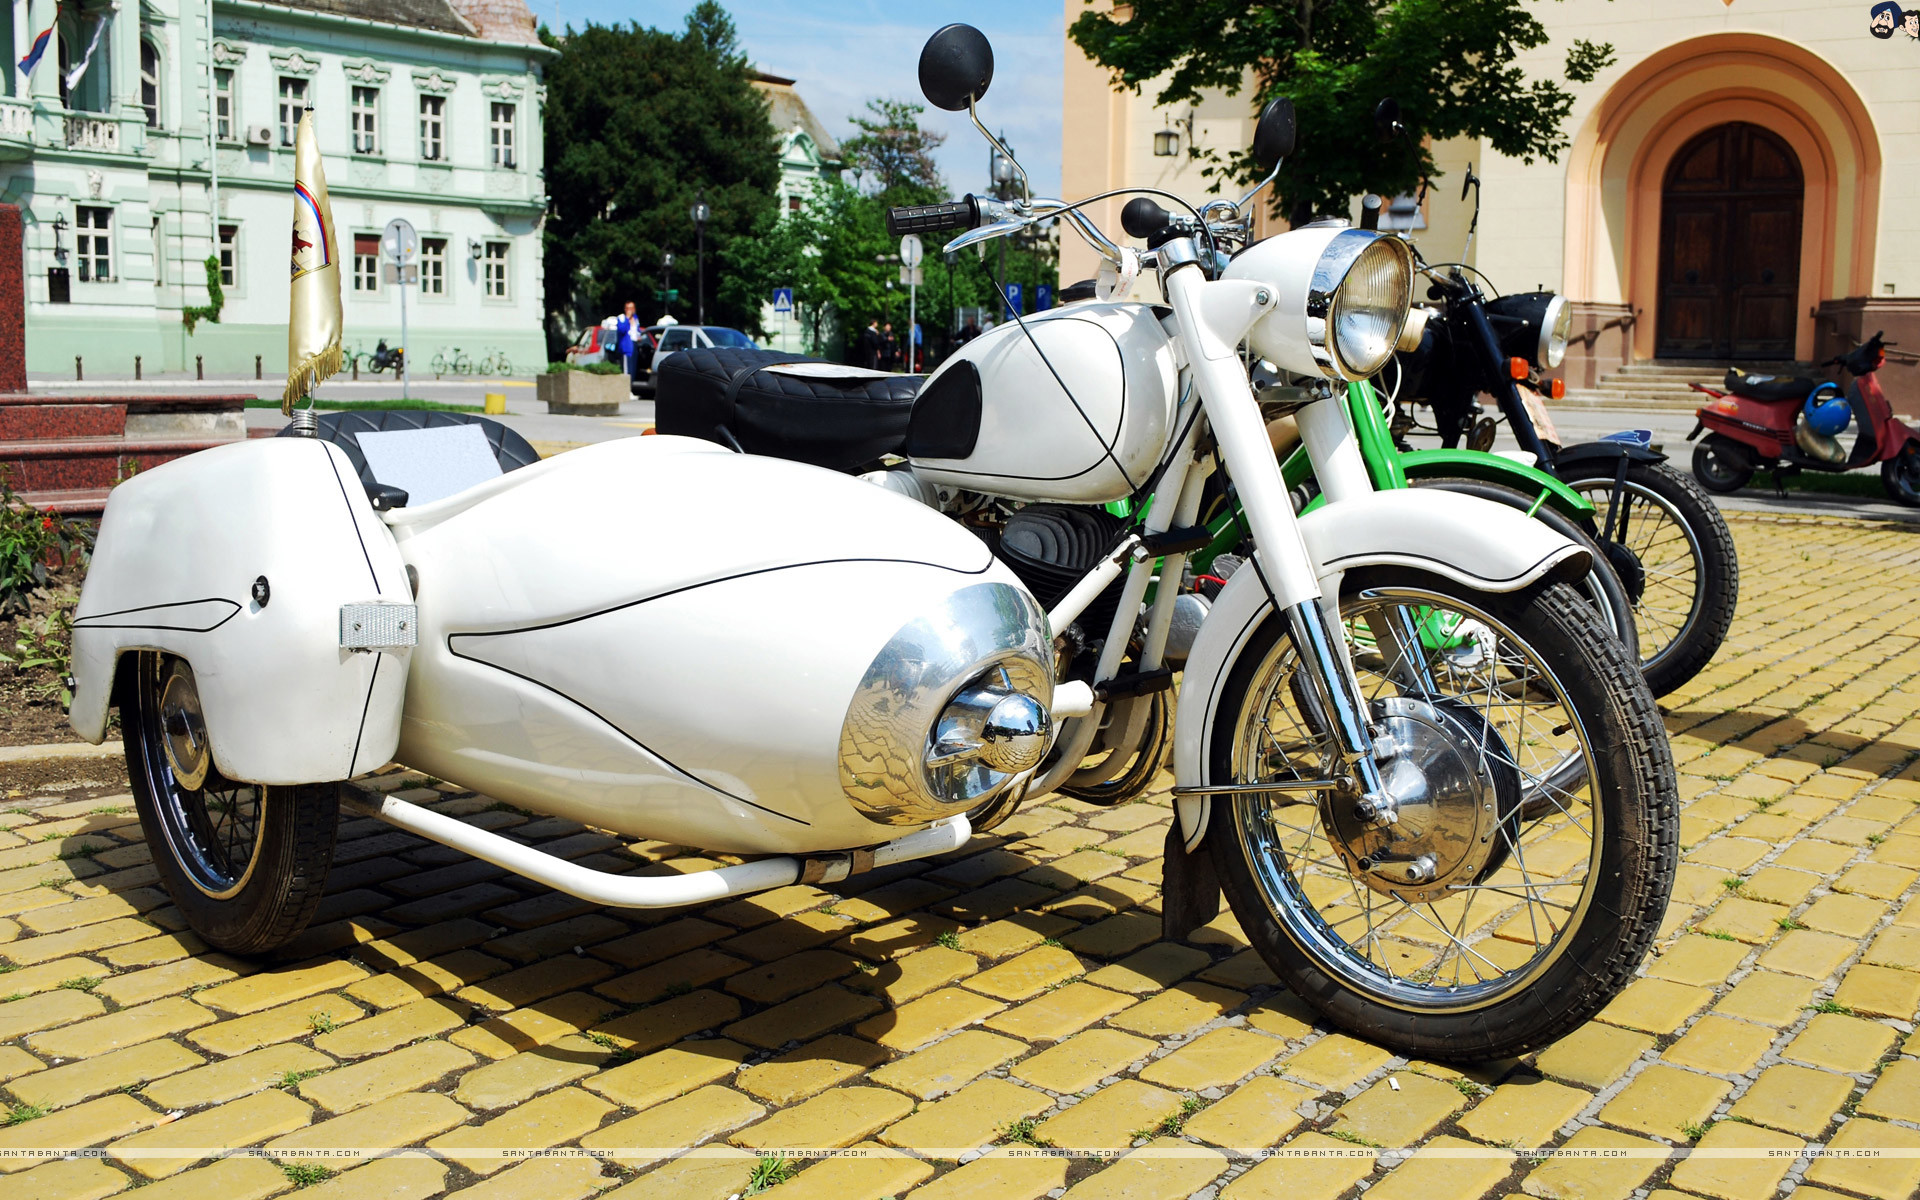 Res: 1920x1200, White Vintage Motorcycle with Sidecar.